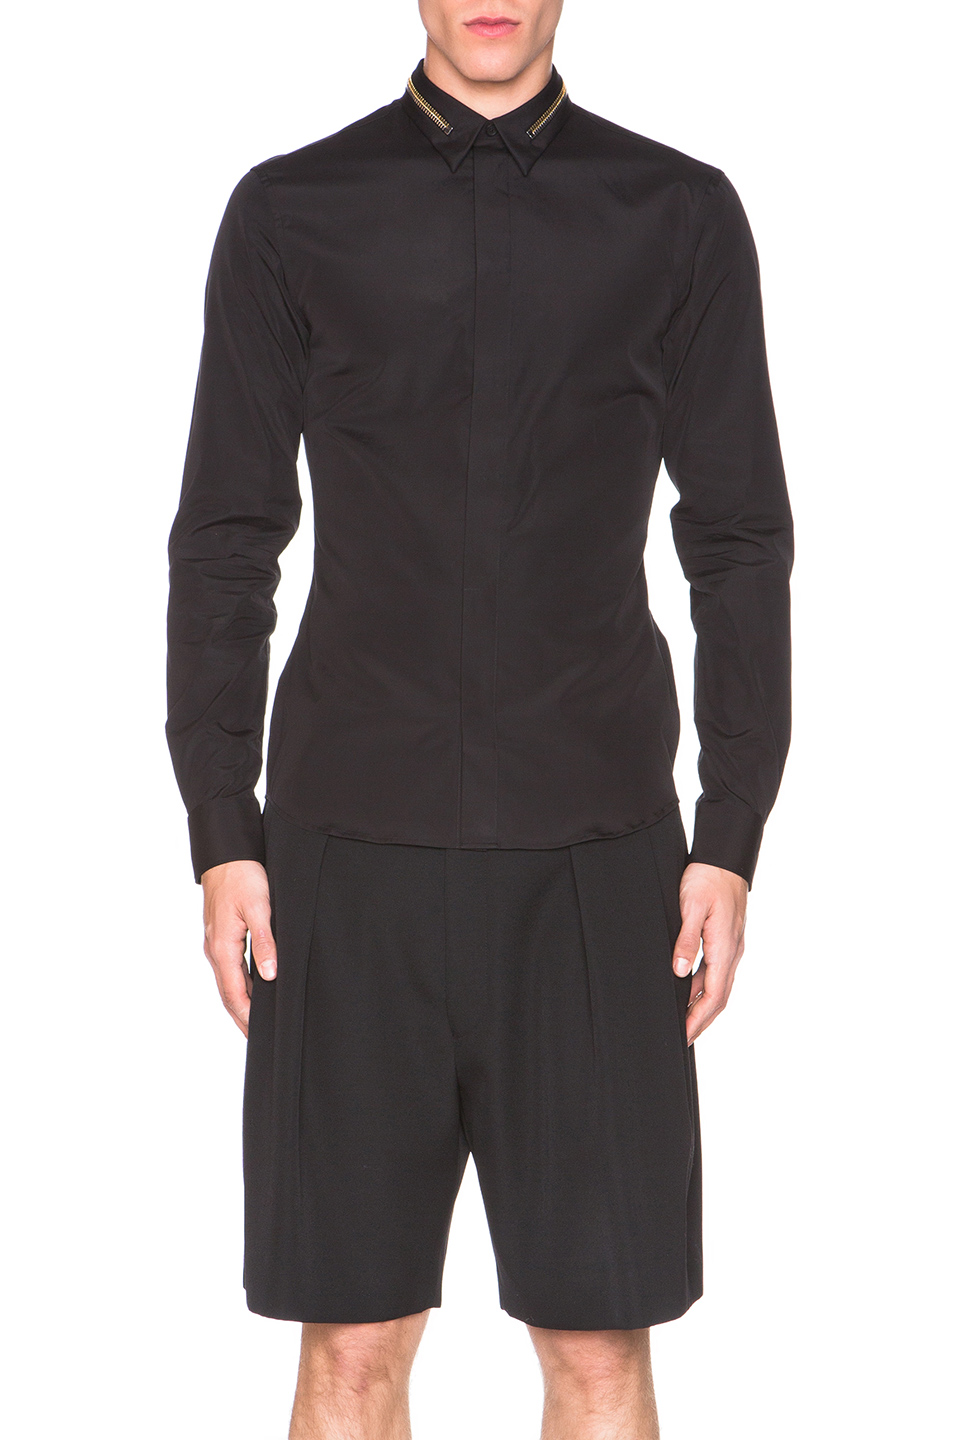 Givenchy Zip Collar Button Down Shirt in Black